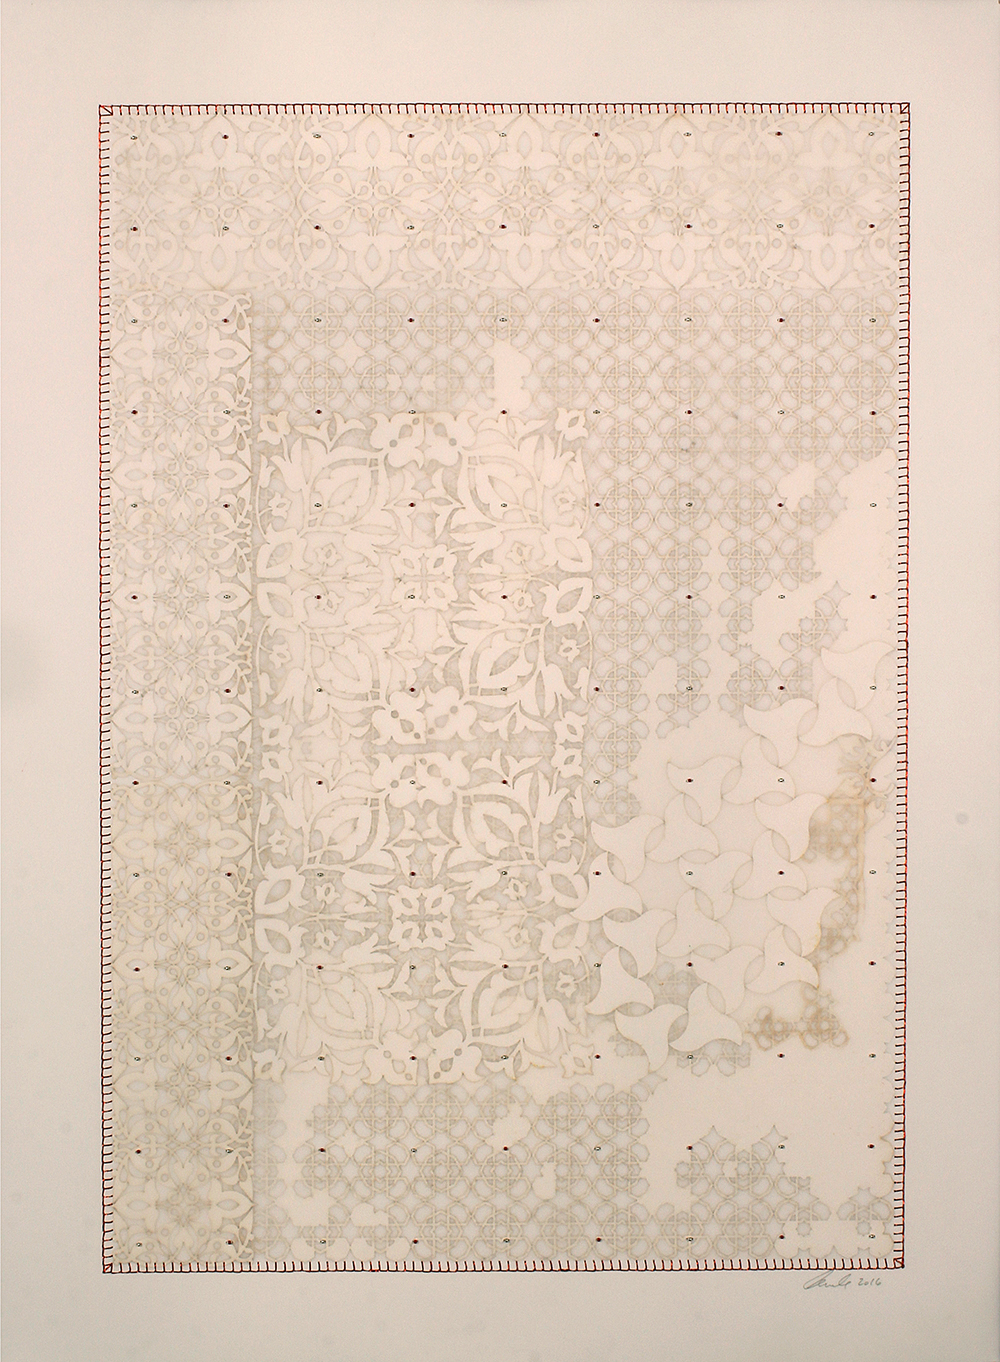 """Antique Lace 2   Mixed media on paper (Laser-cut patterns on paper with mylar, embroidery and beads)  26"""" x 20"""" 2016  Walking With My Mother's Shadow-Artist Statement"""